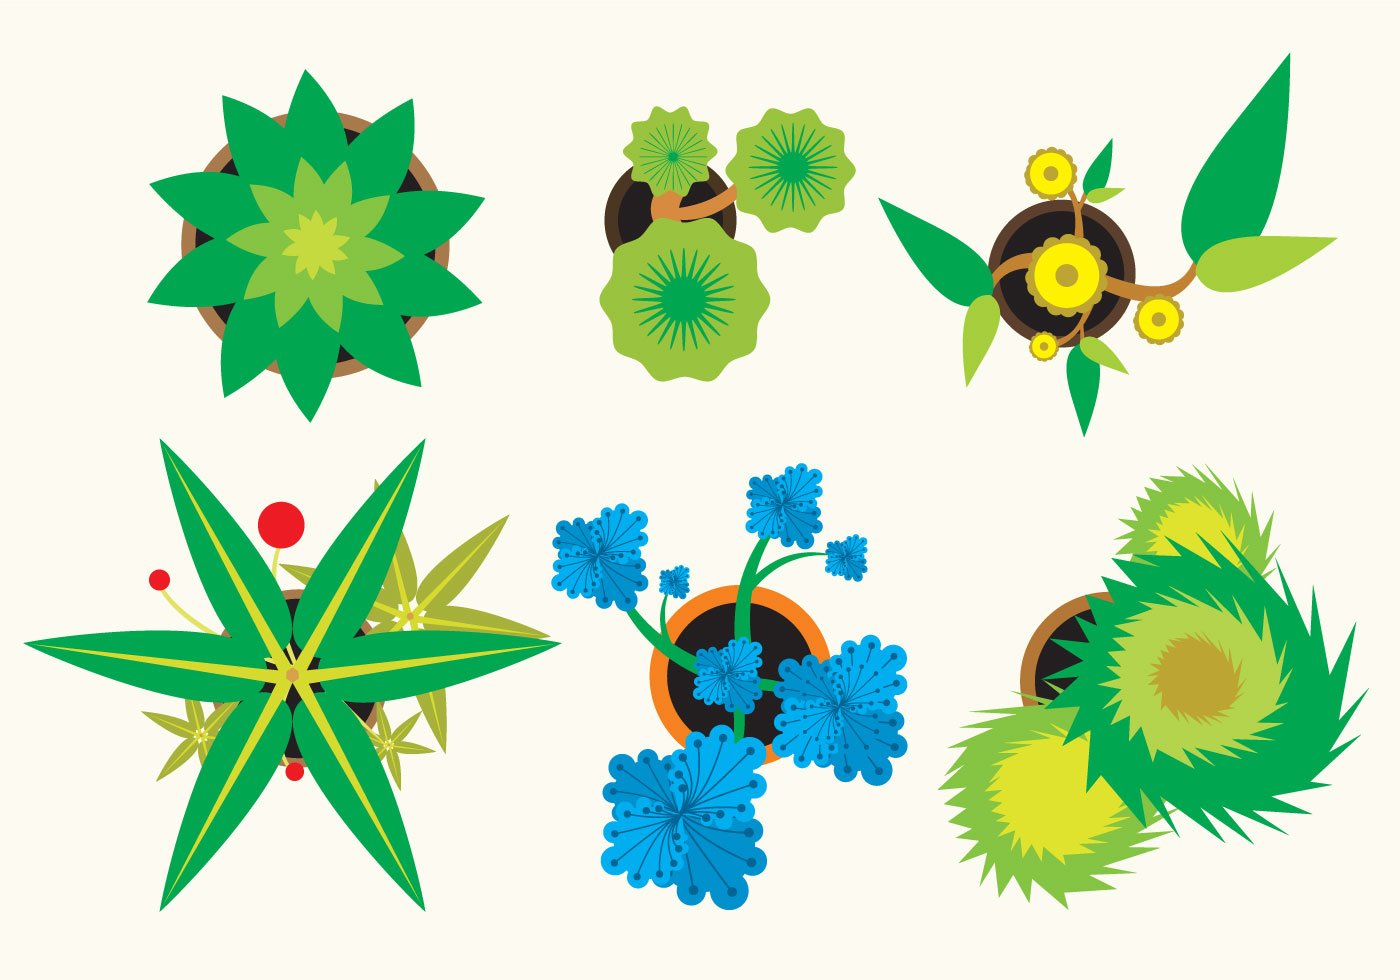 Various Plants Top View - Download Free Vector Art, Stock Graphics ... for Plant Top View Vector  104xkb